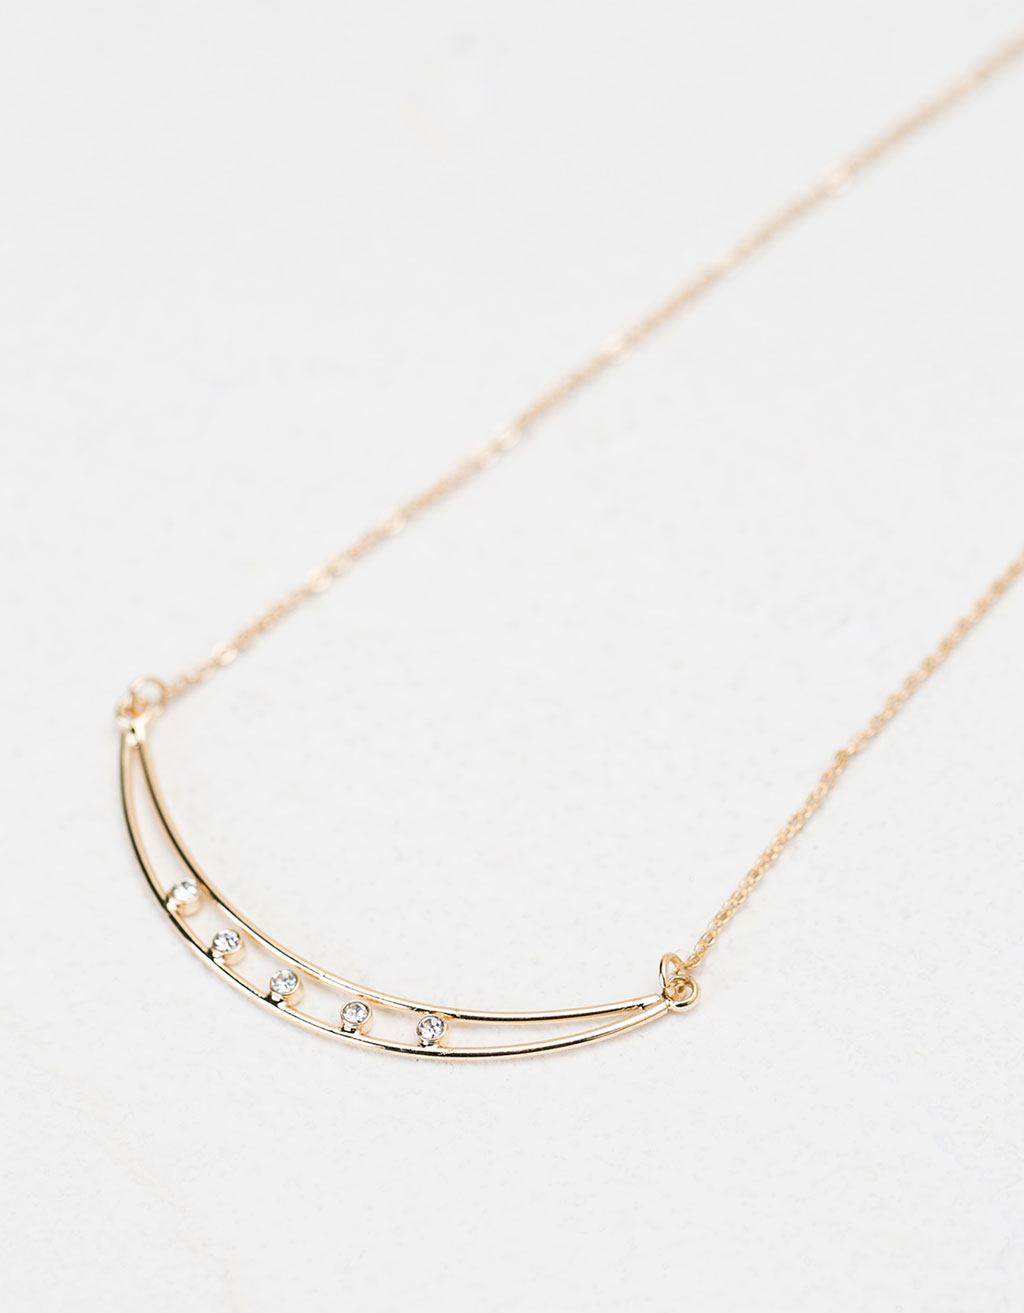 Half moon shimmer necklace